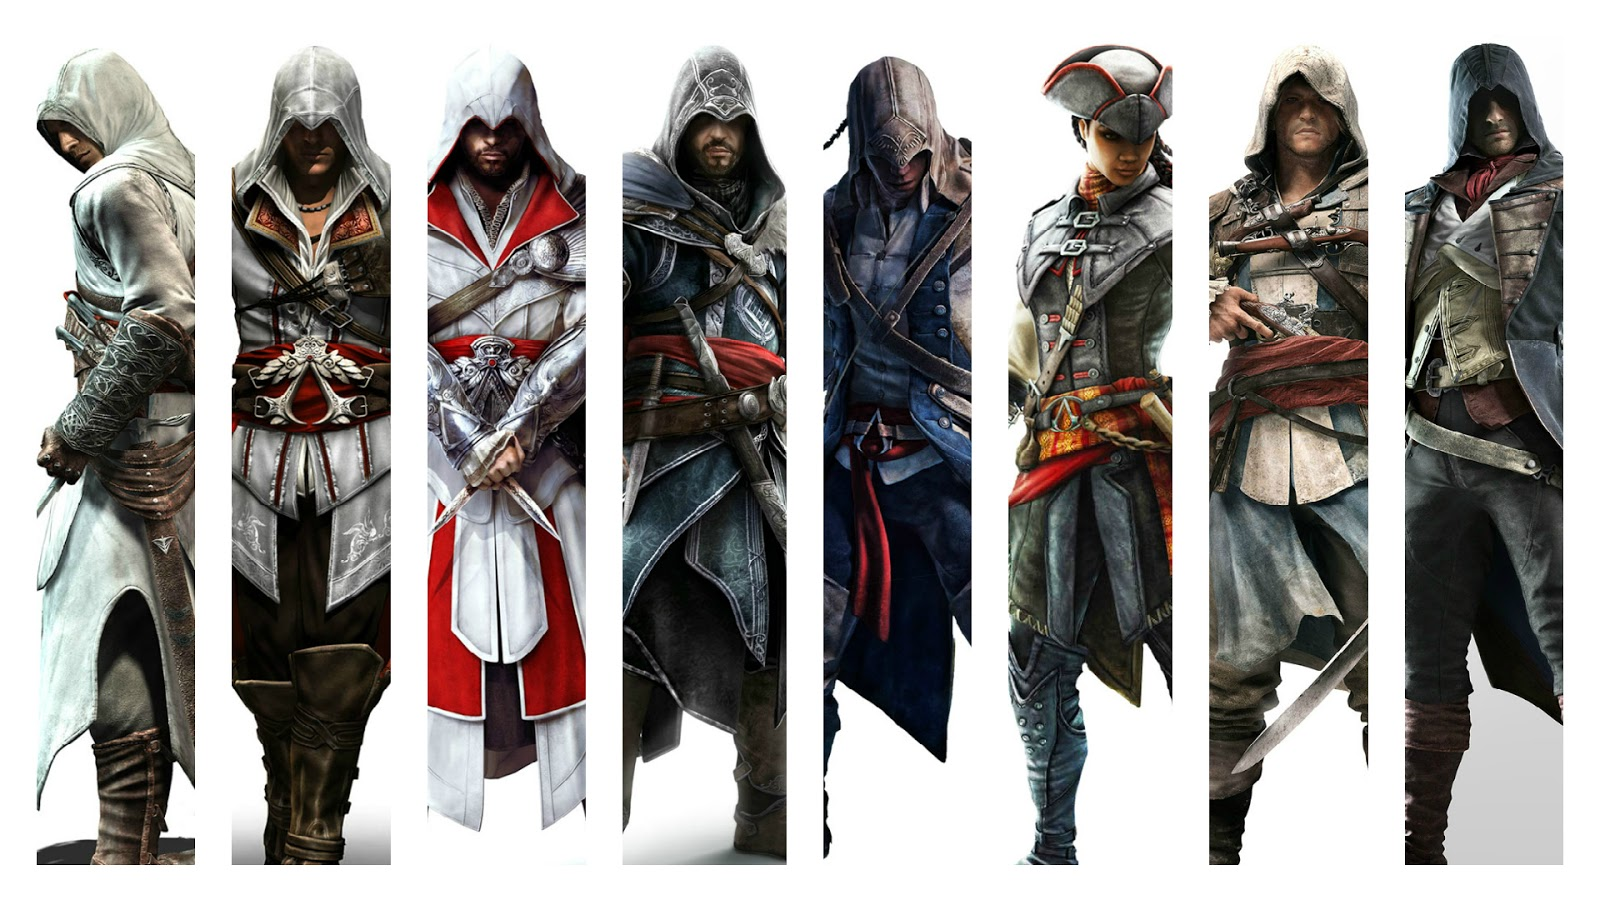 Assassin s creed character mods hardcore photos